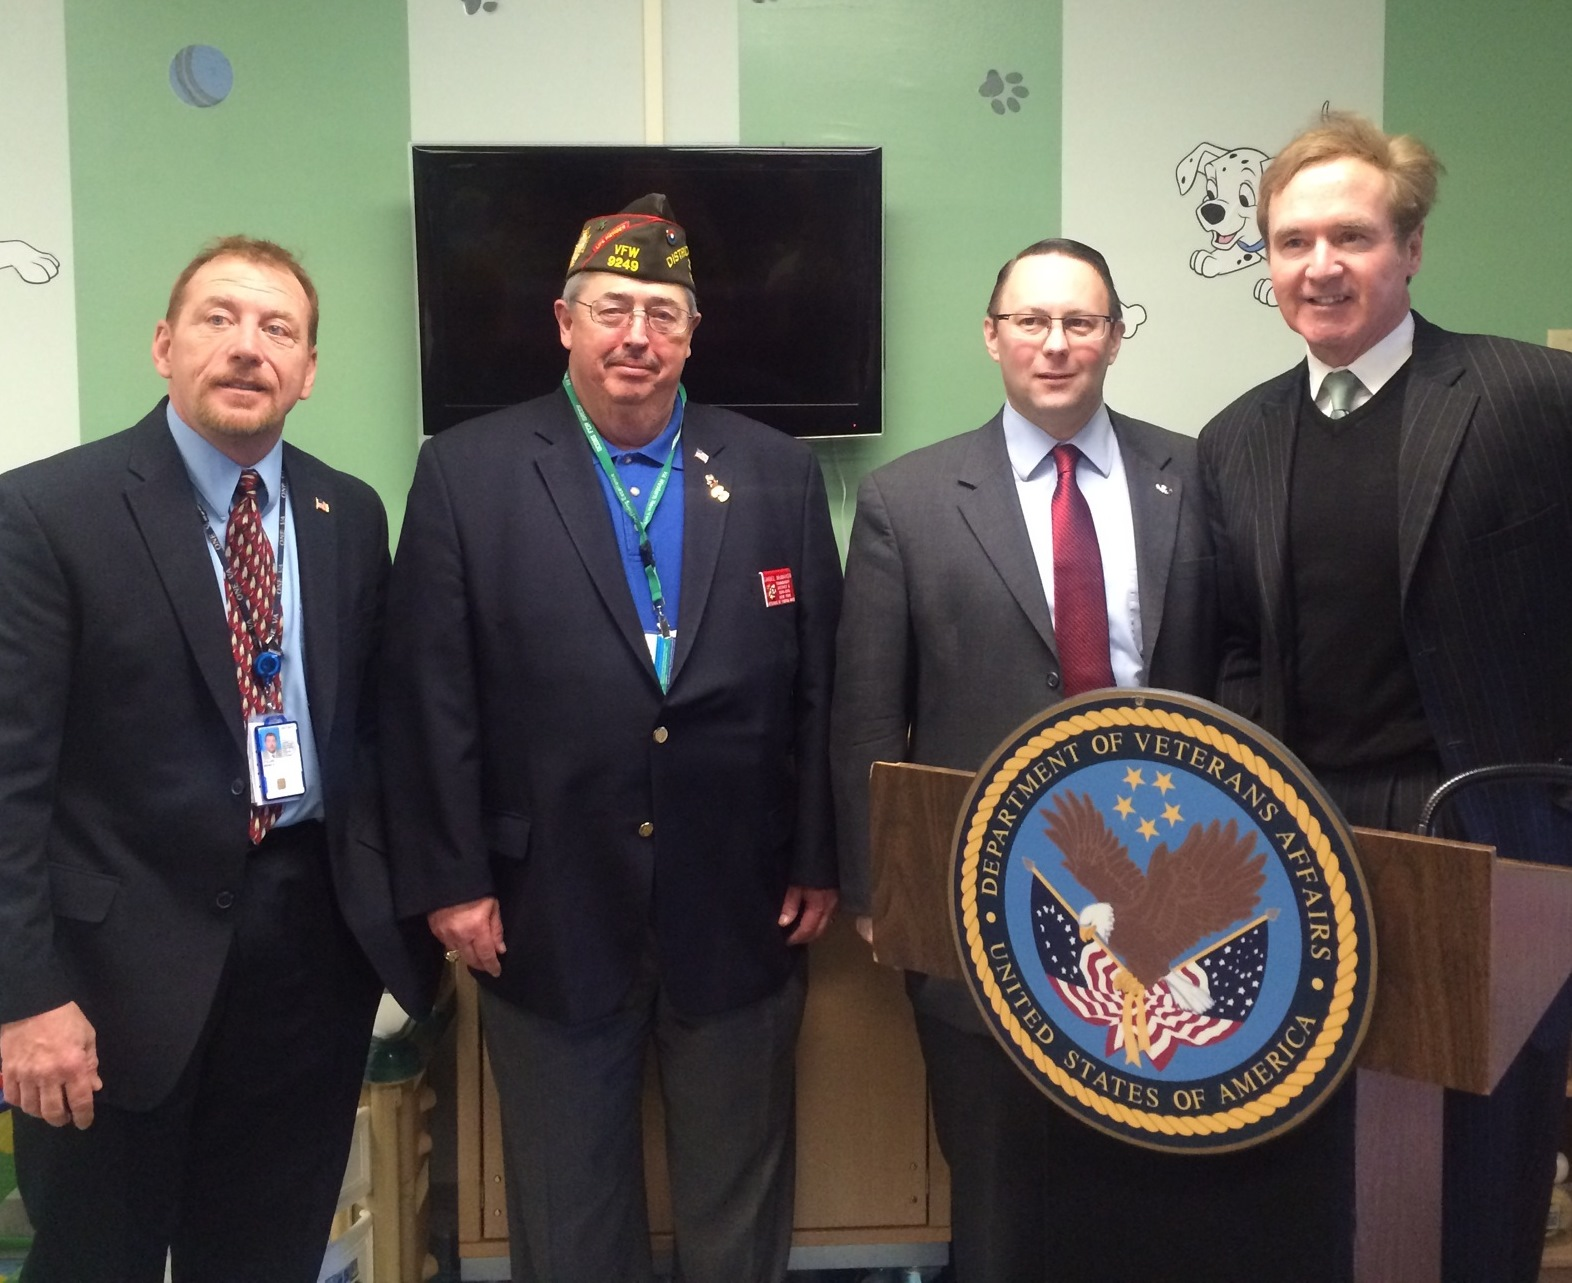 Pictured, from left: WNY VA Healthcare System Director Brian Stiller, VFW NY District 6 Commander Dan McMahon, Veteran One-Stop Center of WNY CEO Roger Woodworth and Congressman Brian Higgins.